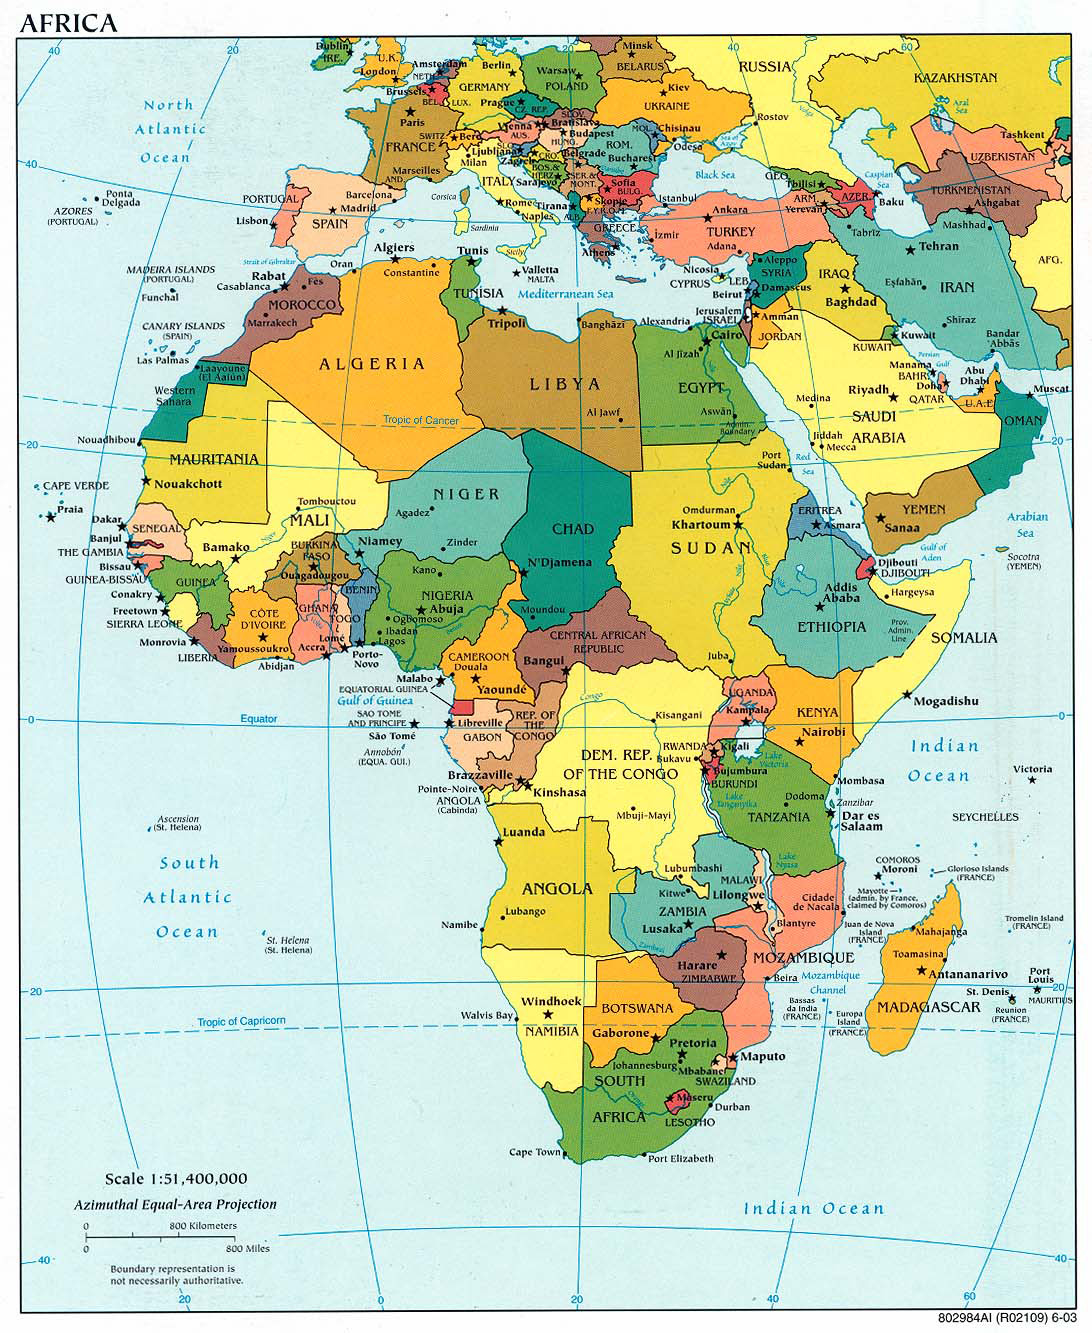 Map Of Africa Detailed.Detailed Political Map Of Africa With Capitals 2003